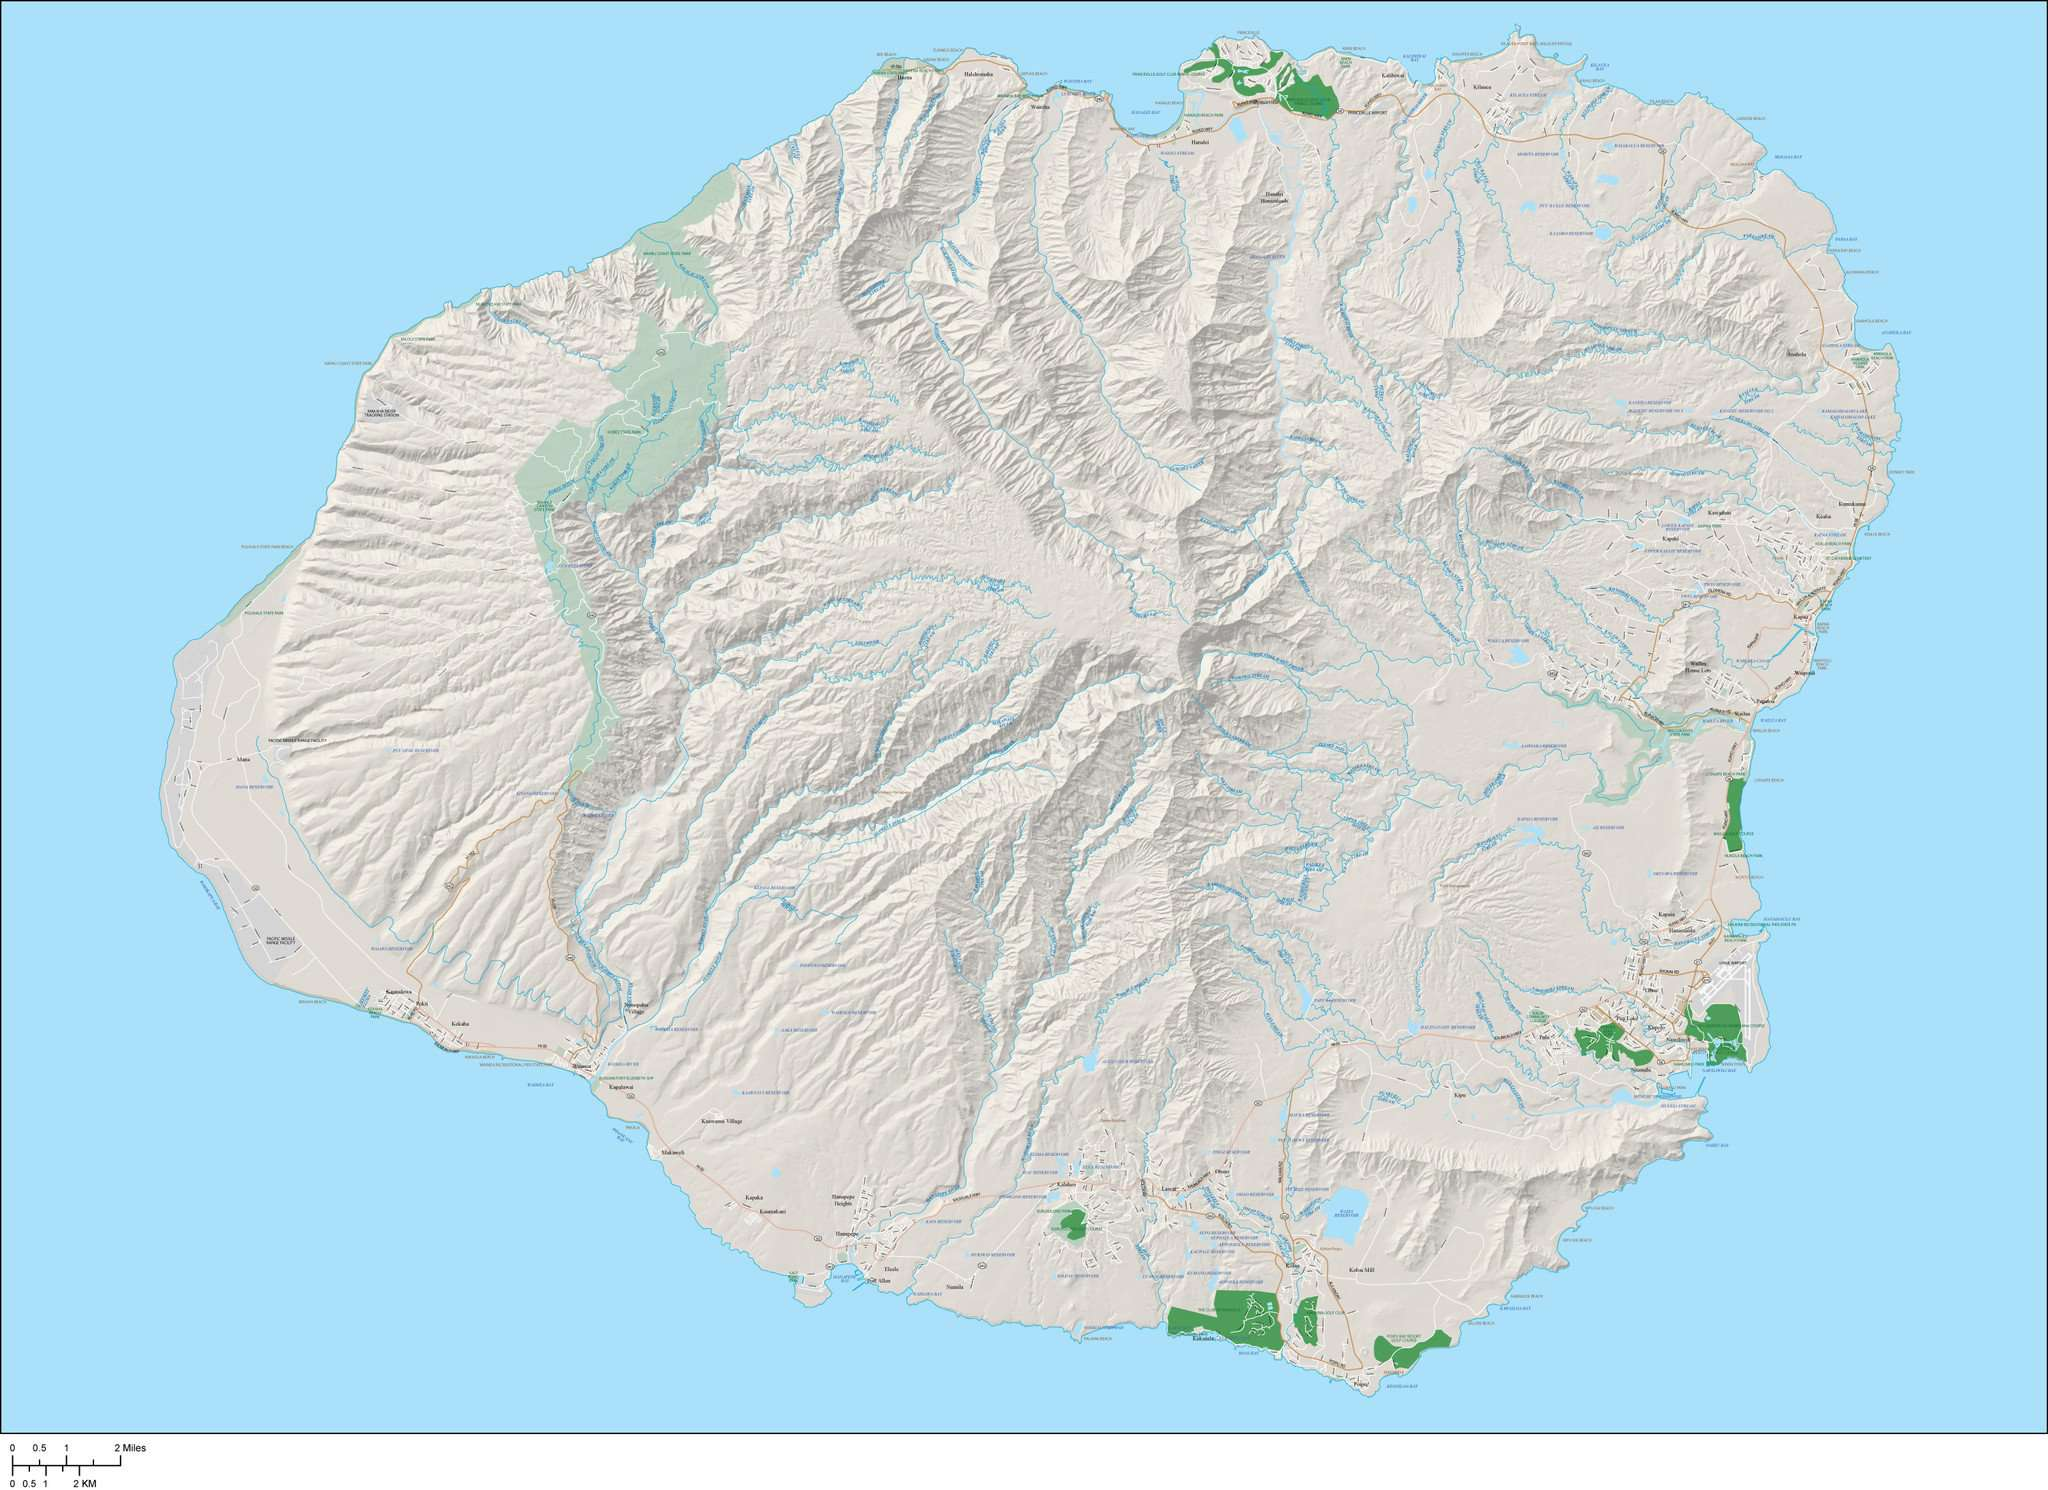 Kauai Island HI Map with All Local Streets Plus Terrain on molokai island map, corpus christi island map, kauai hawaii, kihei island map, kauai places to visit, rome island map, new orleans island map, oahu map, kilauea map, lanai island map, mississippi island map, oregon island map, connecticut island map, ohio island map, lihue island map, maui island map, virginia island map, myrtle beach island map, san jose island map, hawaii map,